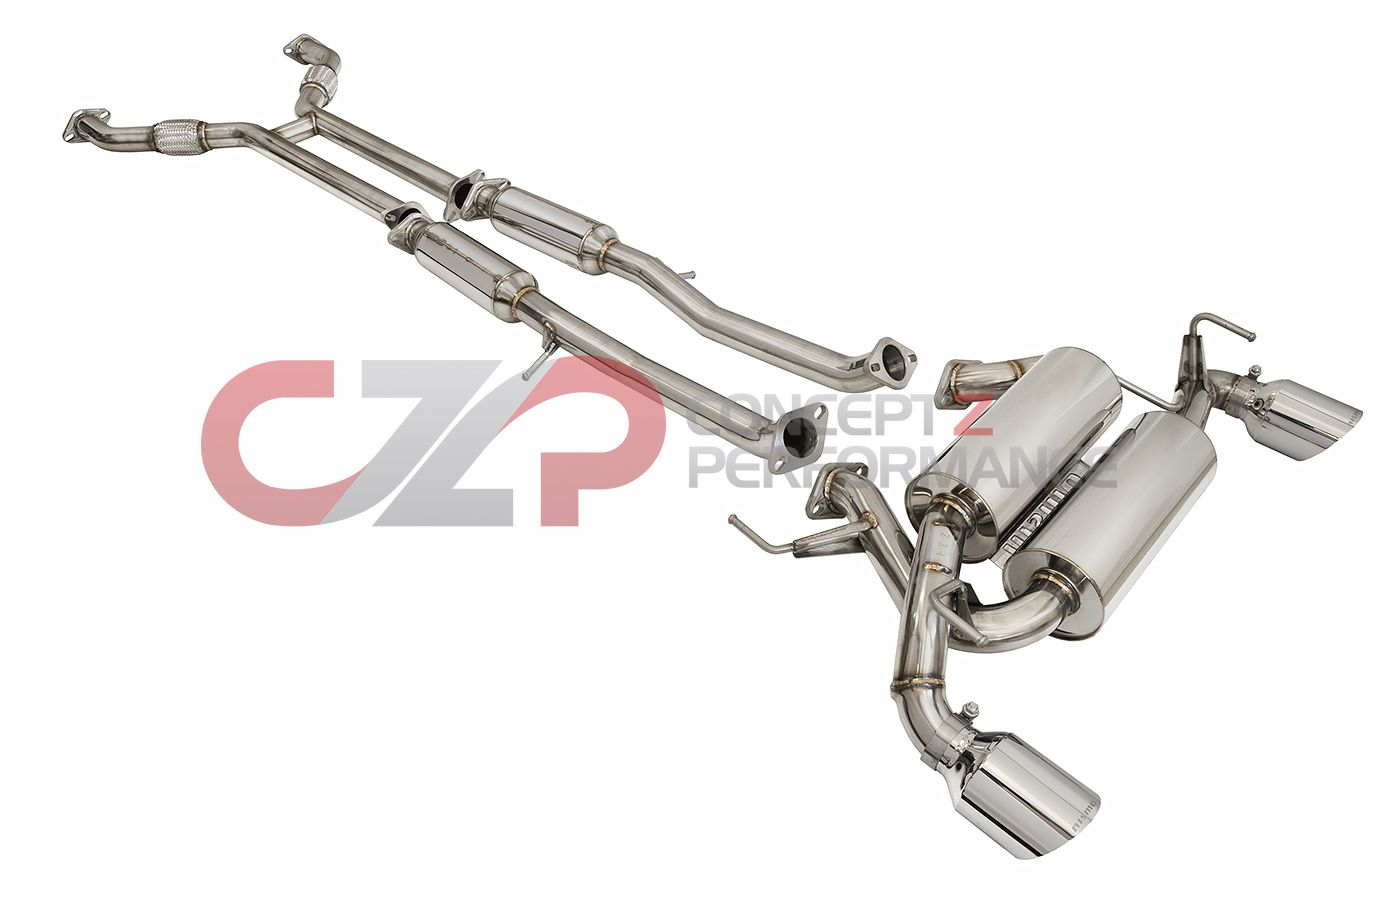 z34 exhaust system concept z performance